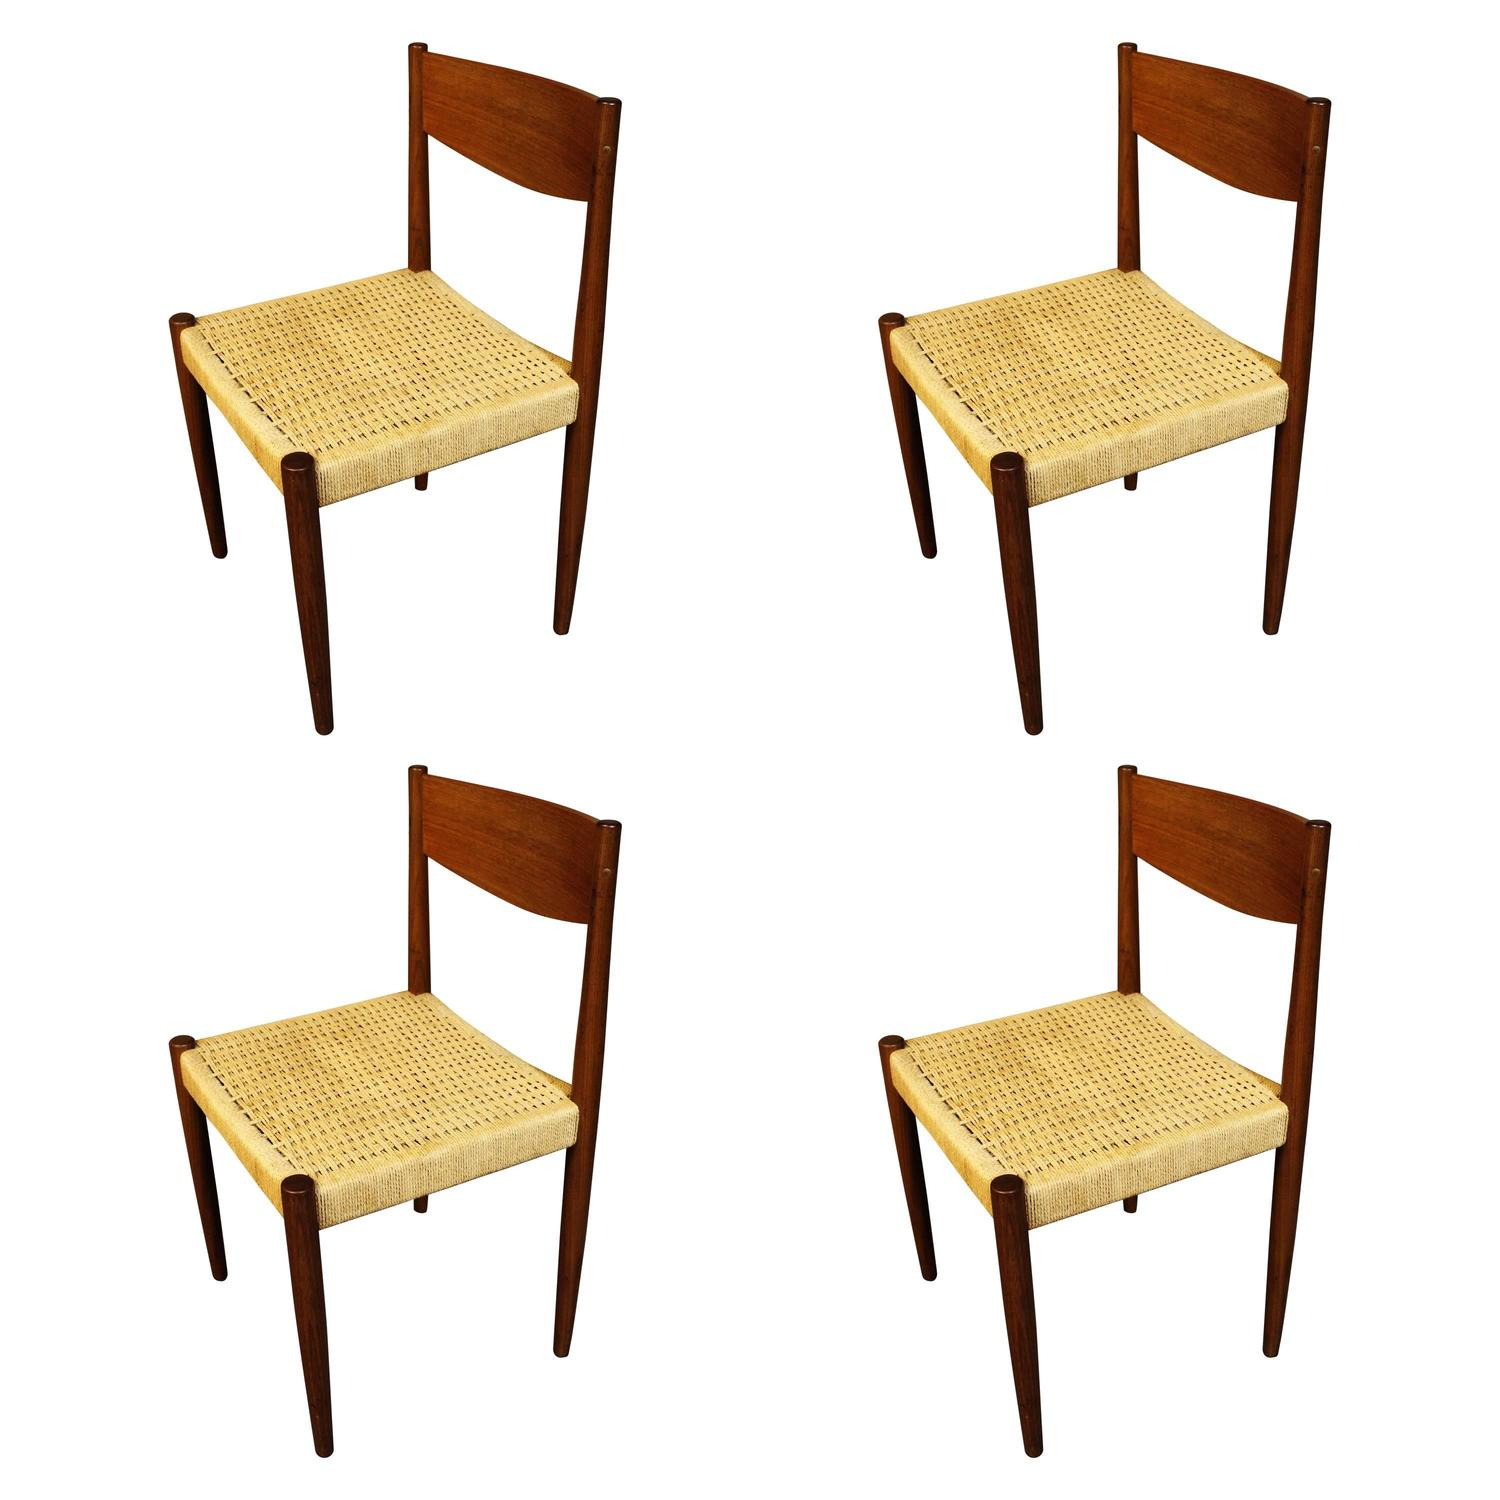 Four poul volther for frem rojle danish teak woven cord dining chairs for sale at 1stdibs - Scandinavian teak dining room furniture ...